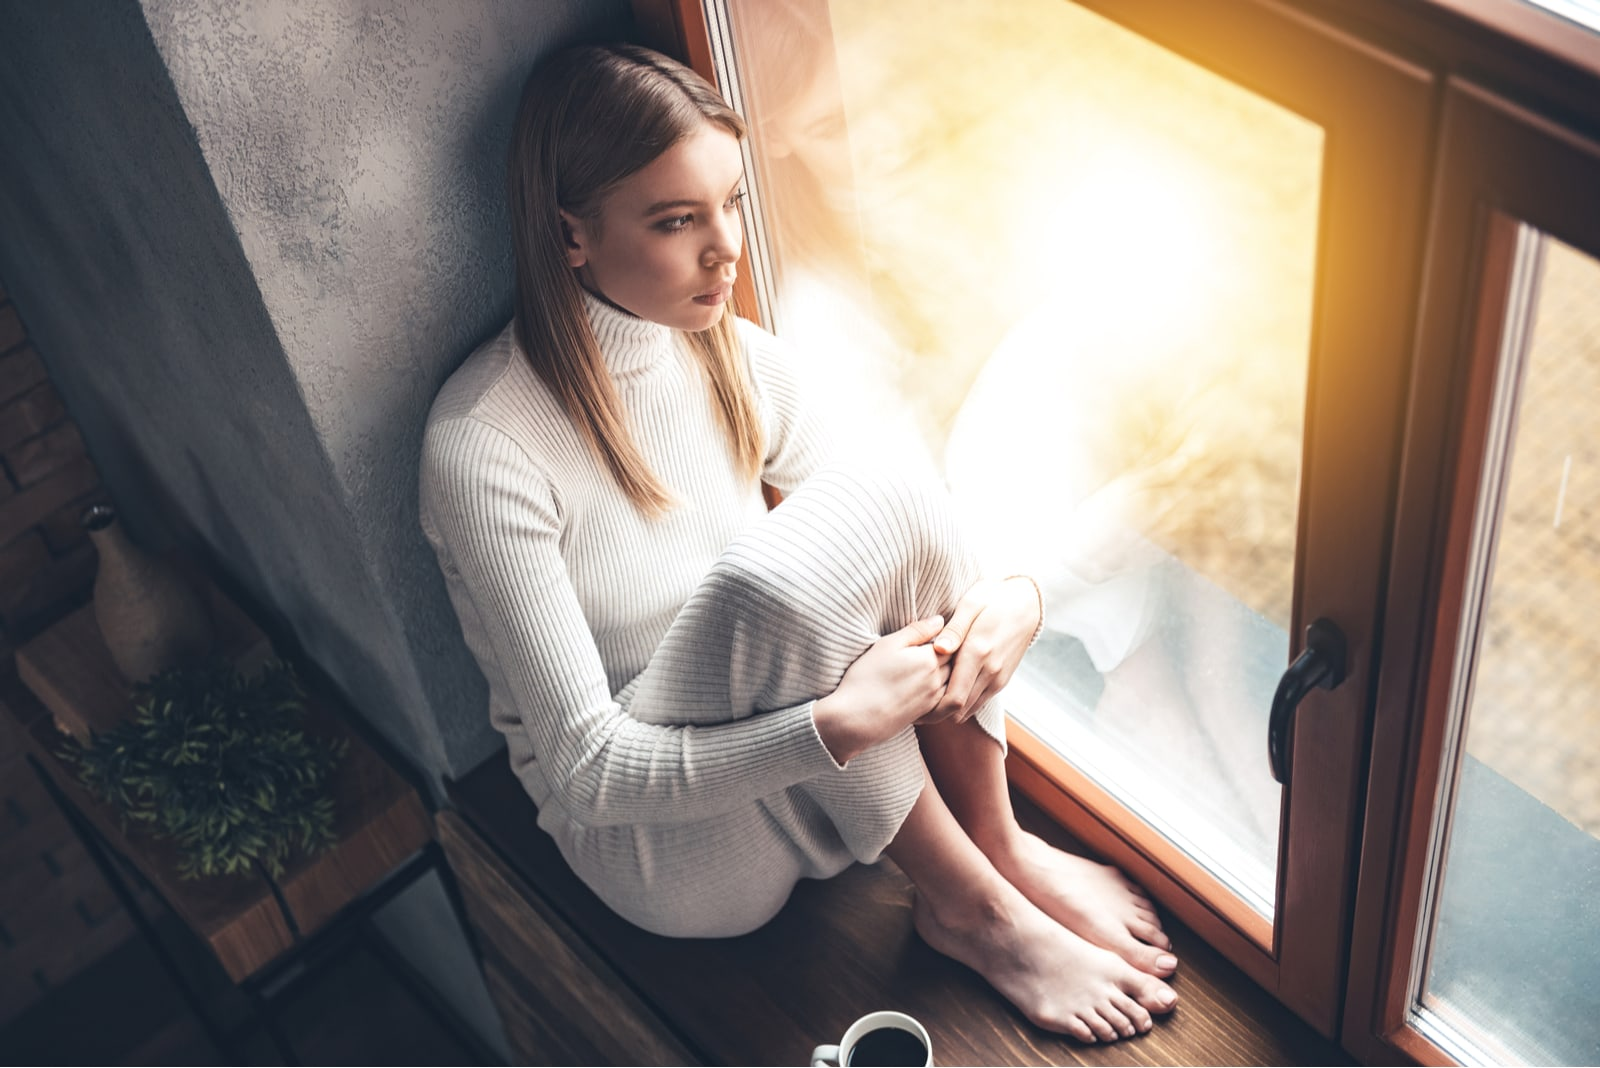 the woman is sitting by the window drinking coffee